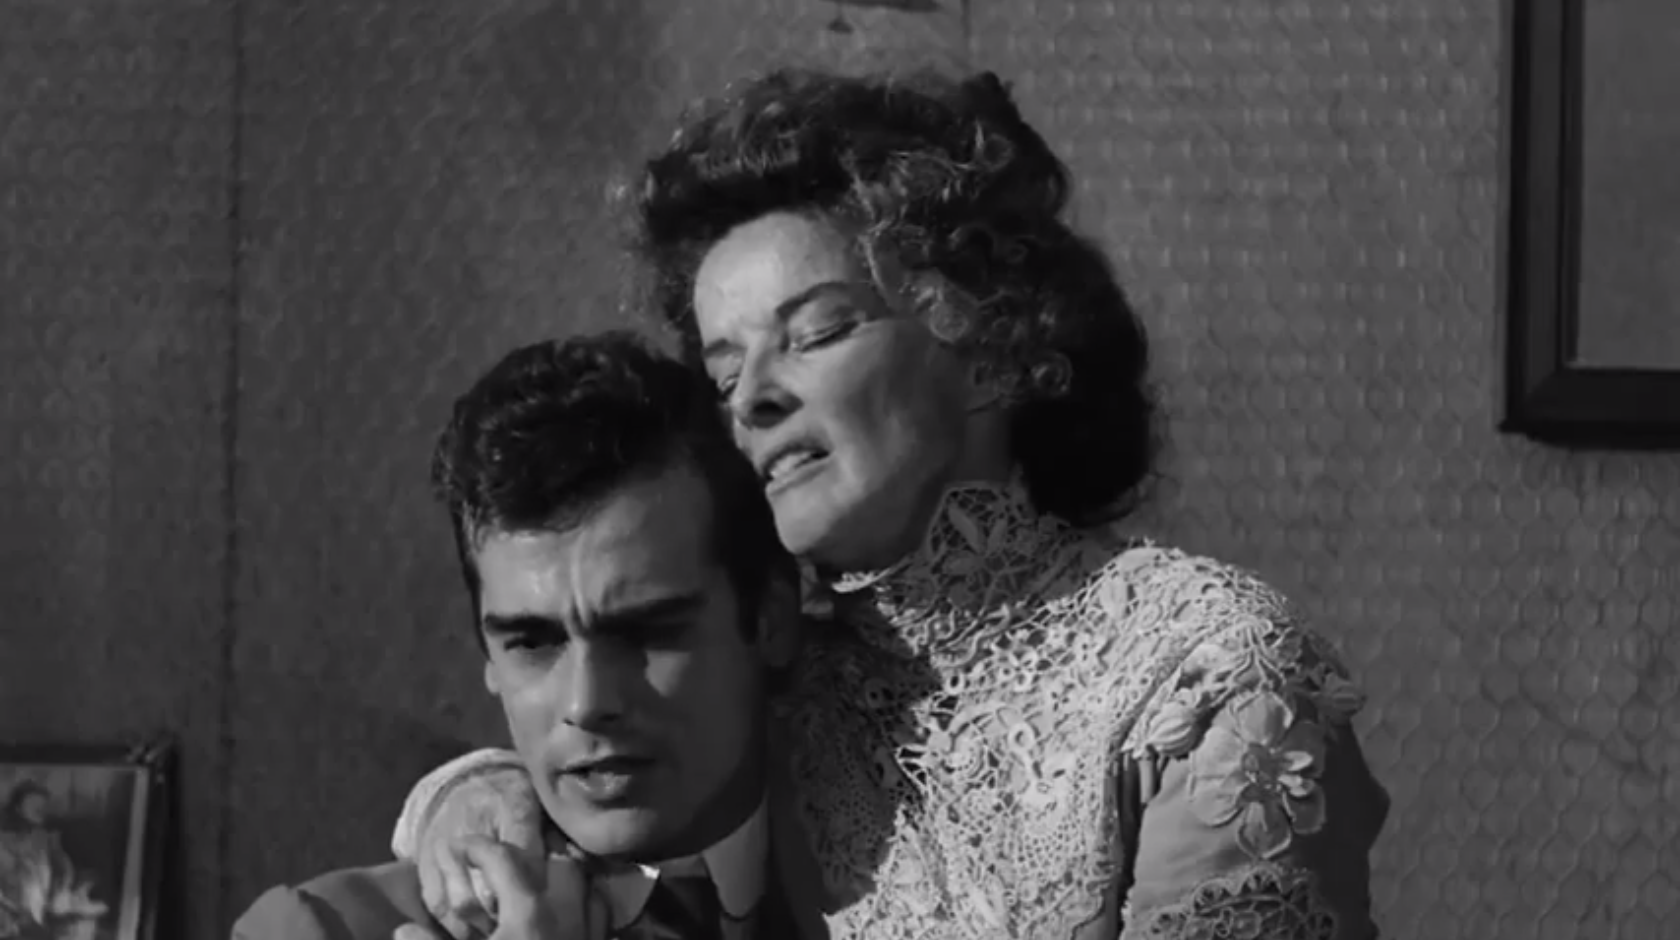 Dean Stockwell and Katherine Hepburn in Long Day's Journey Into Night (1962)